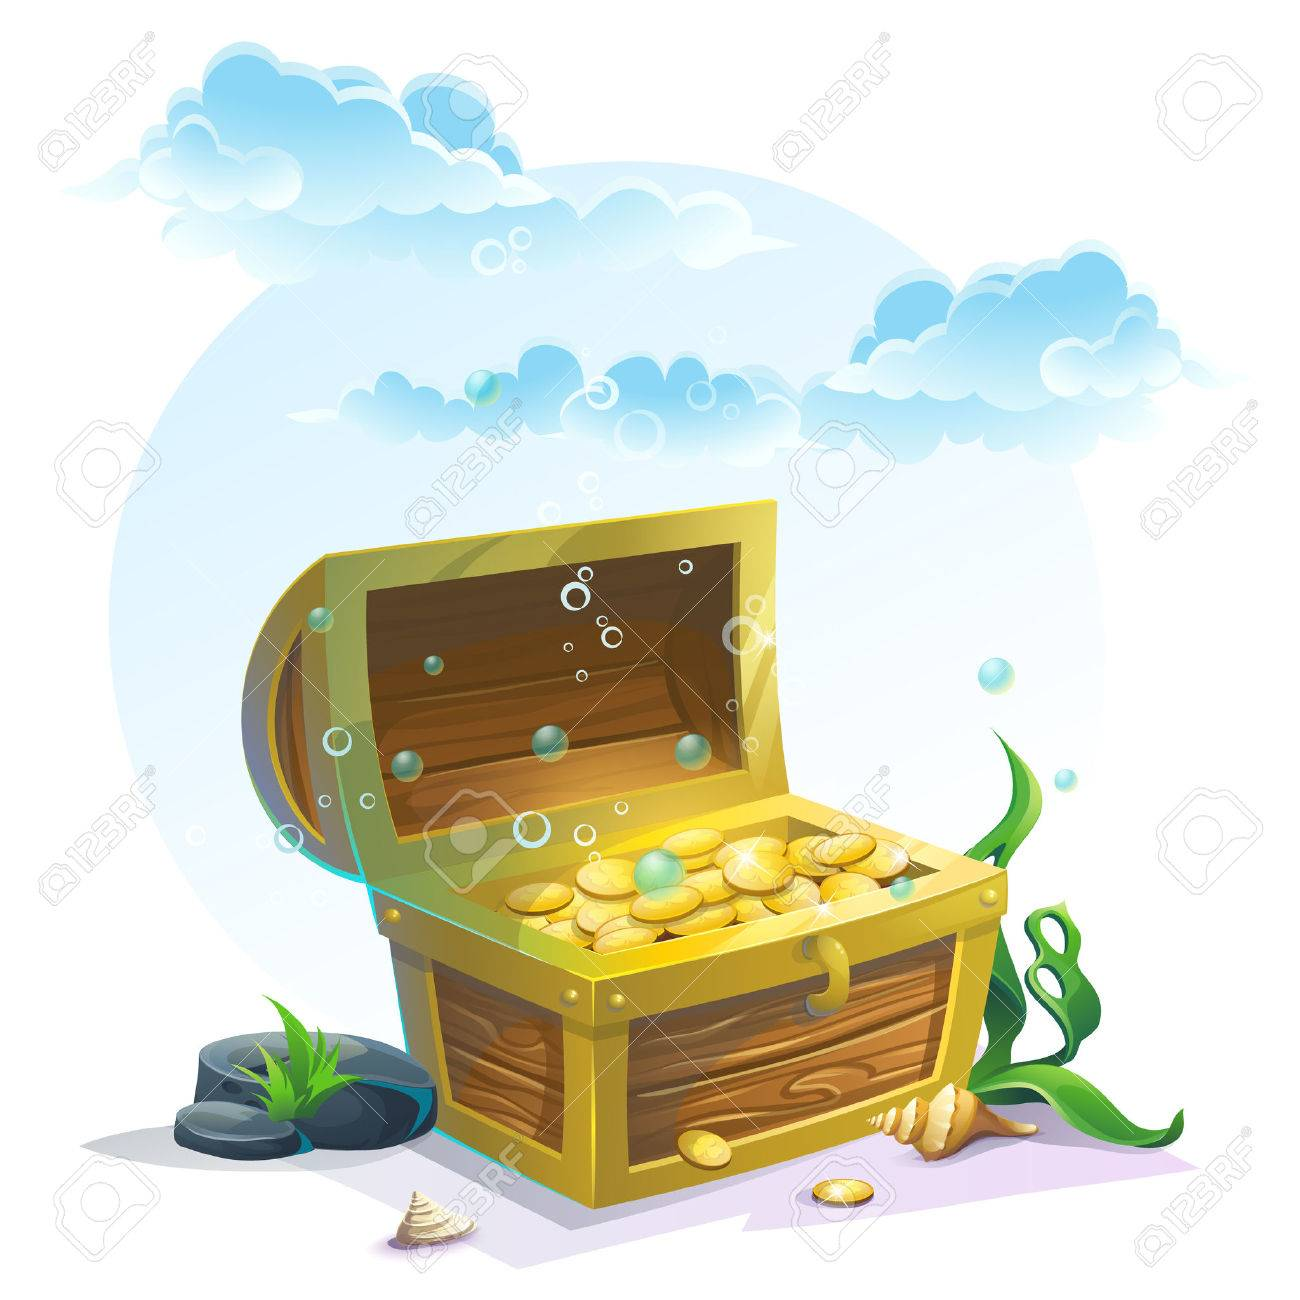 Chest of gold in the sand under the blue clouds - vector illustration for design, banners, textures, backgrounds, postcards - 54432098